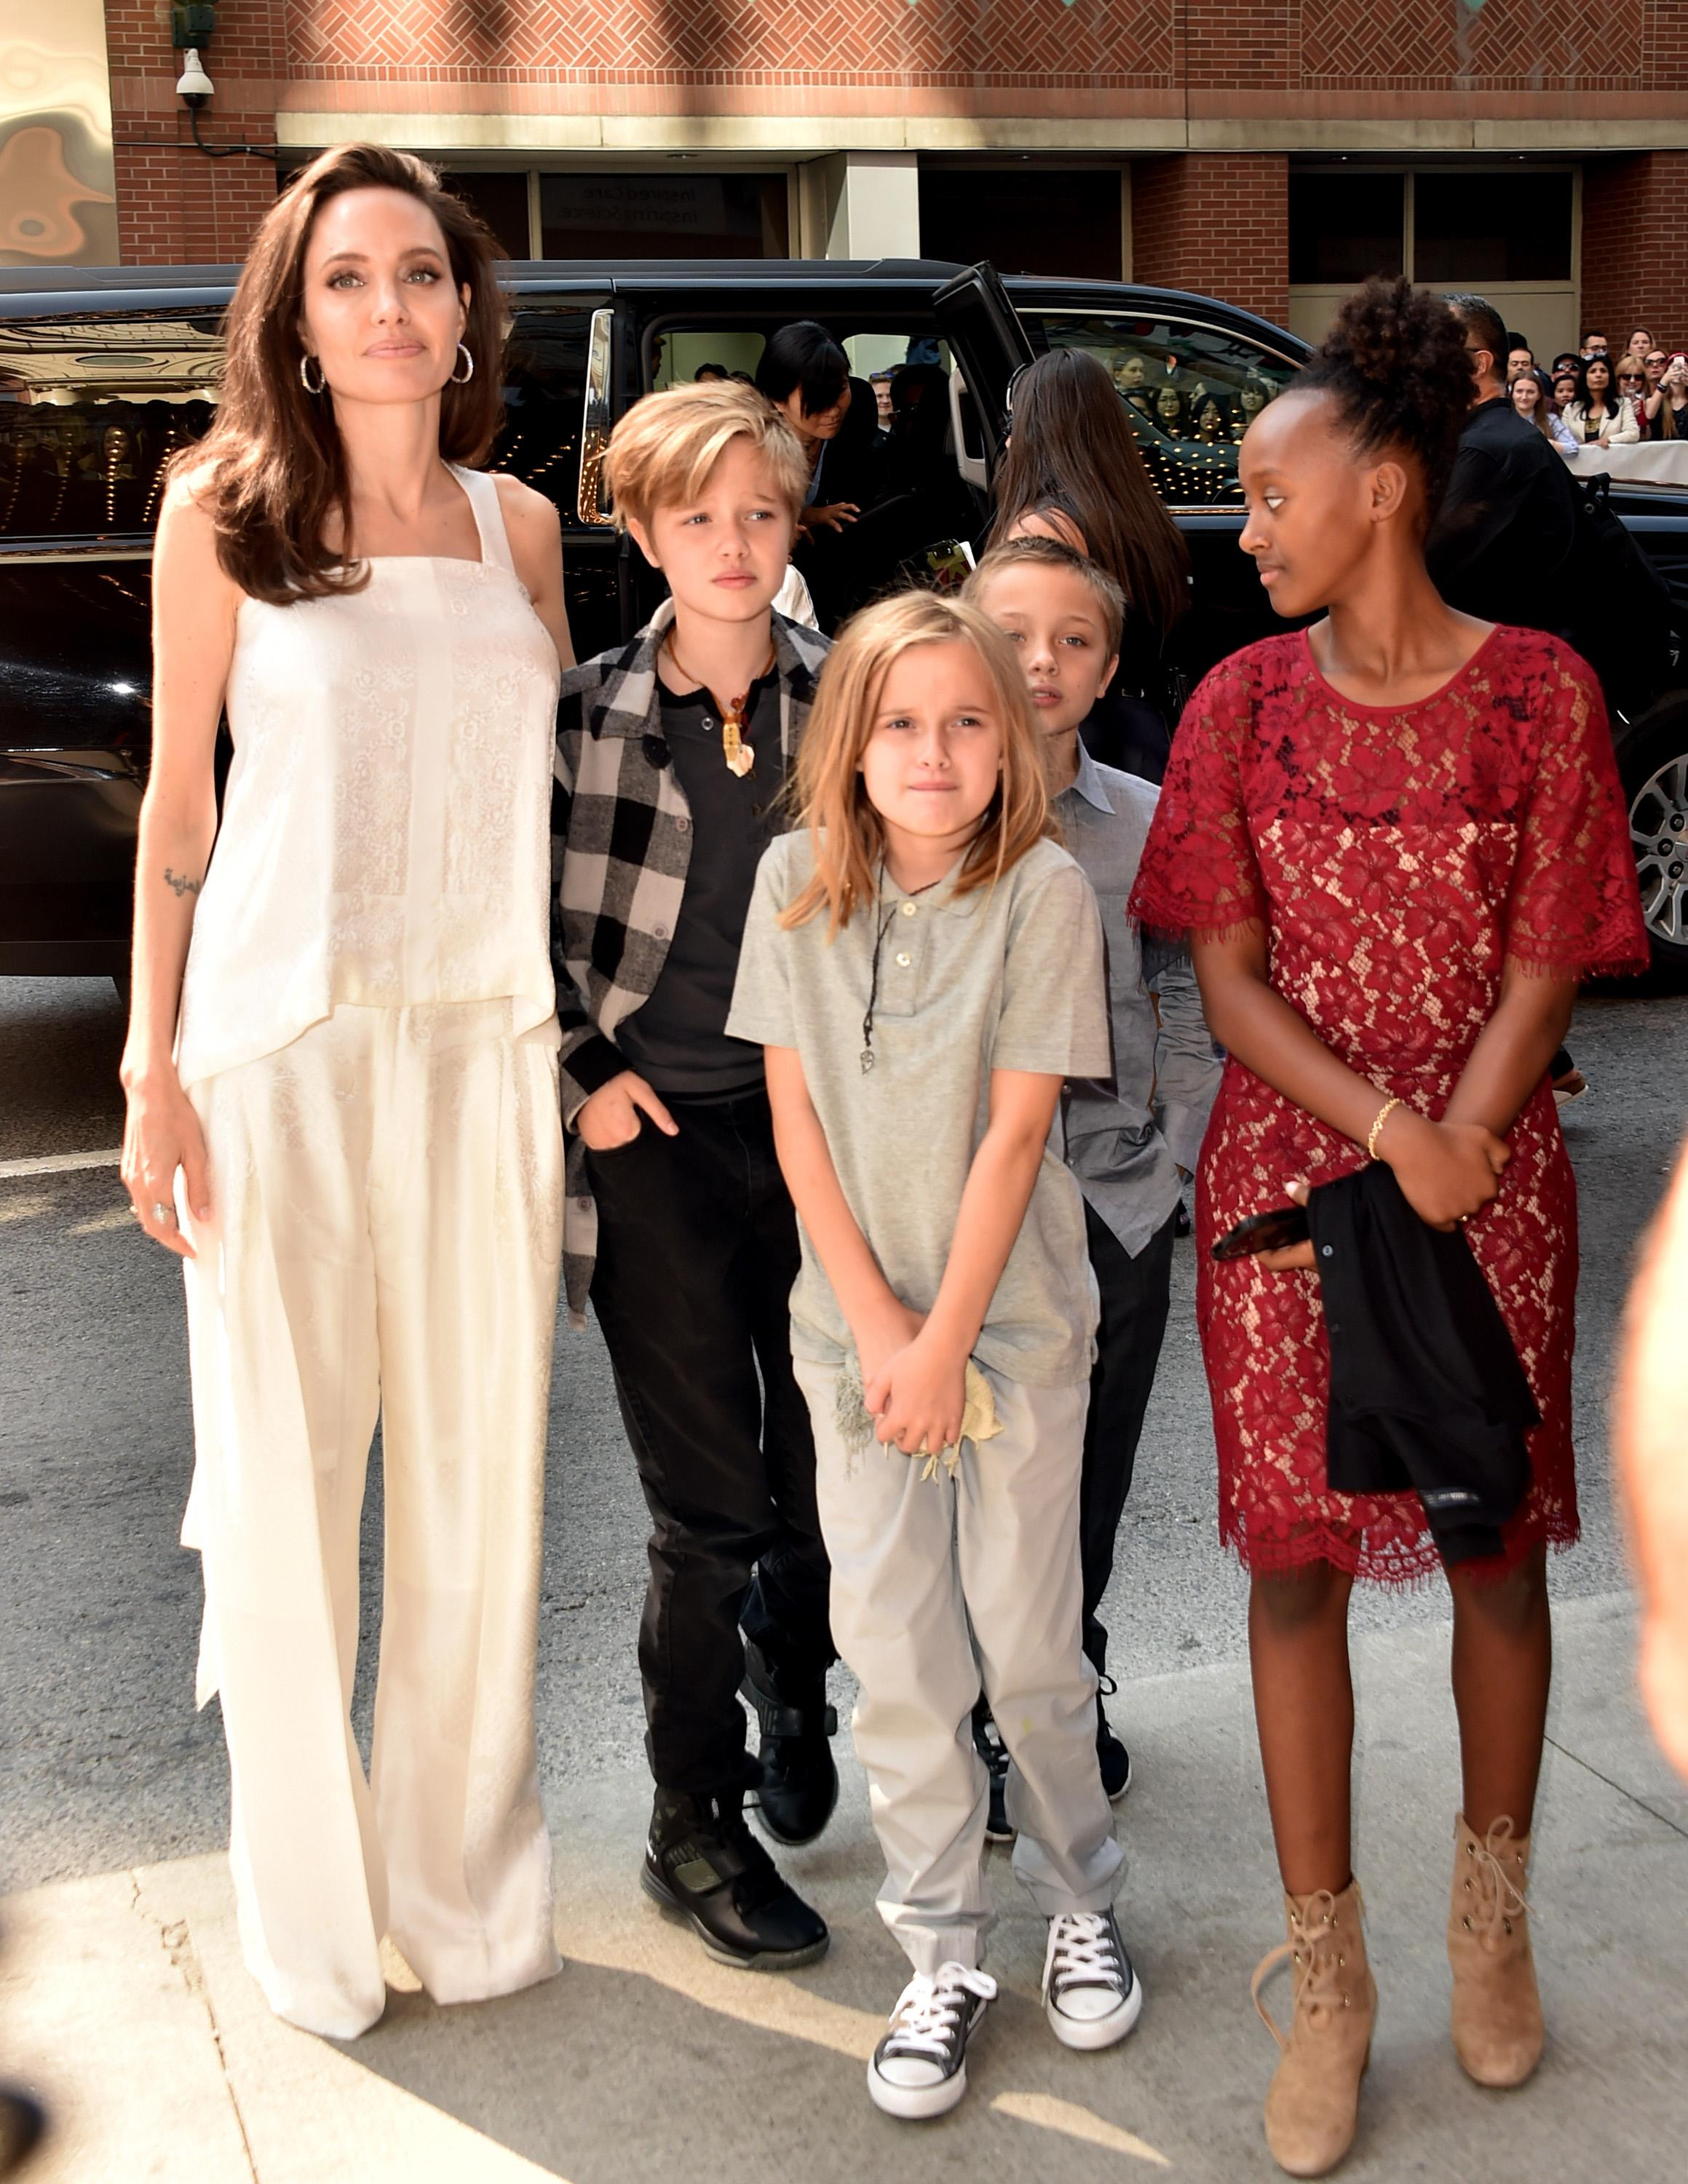 The actress was joined by five of her six children on the red carpet.